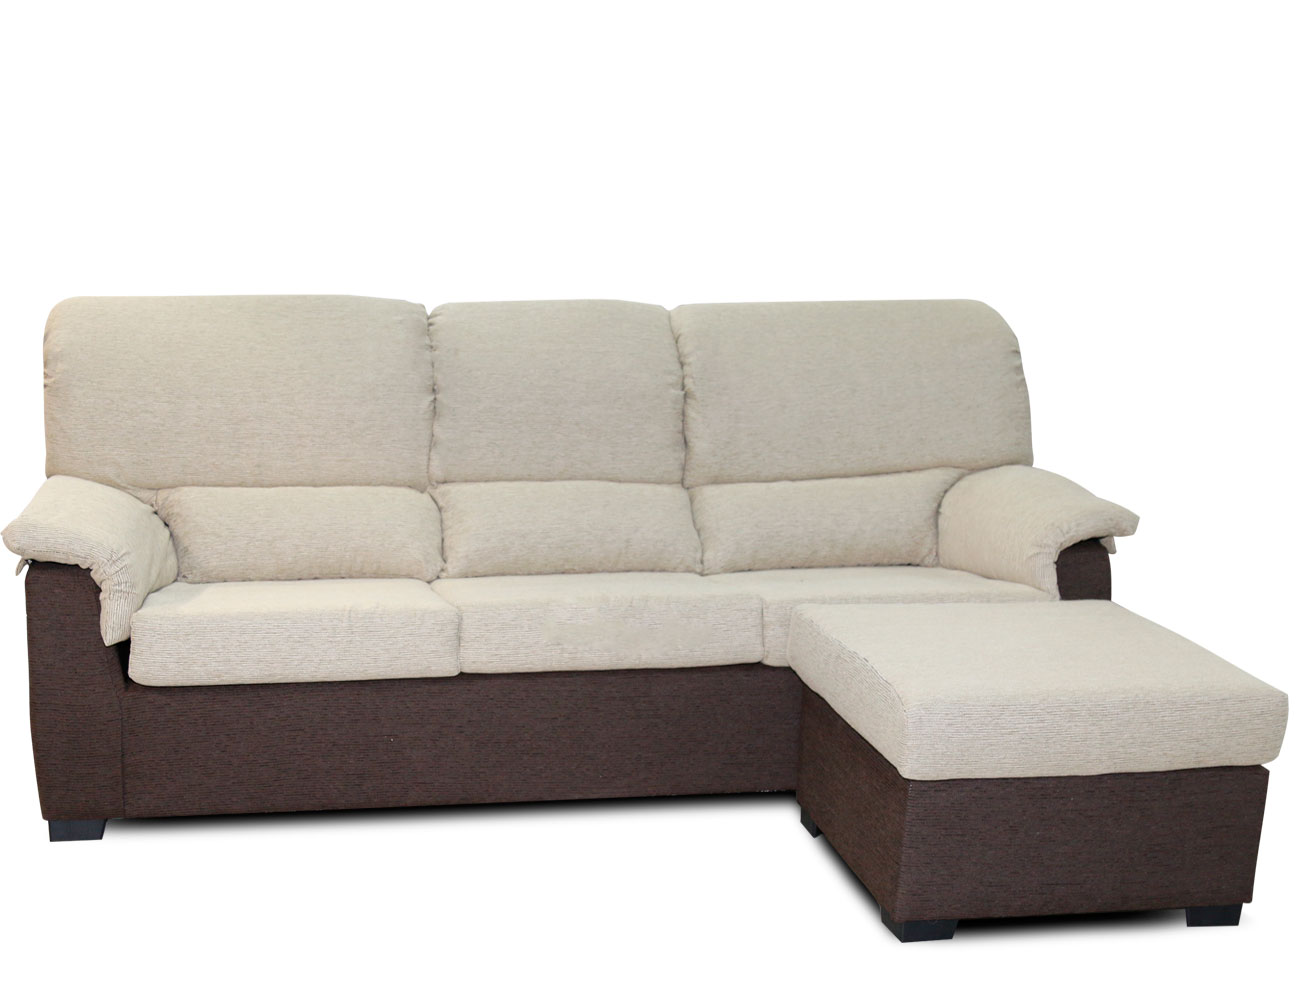 Sofas chaise longue baratos valencia elegant imgm with for Sofas nuevos baratos